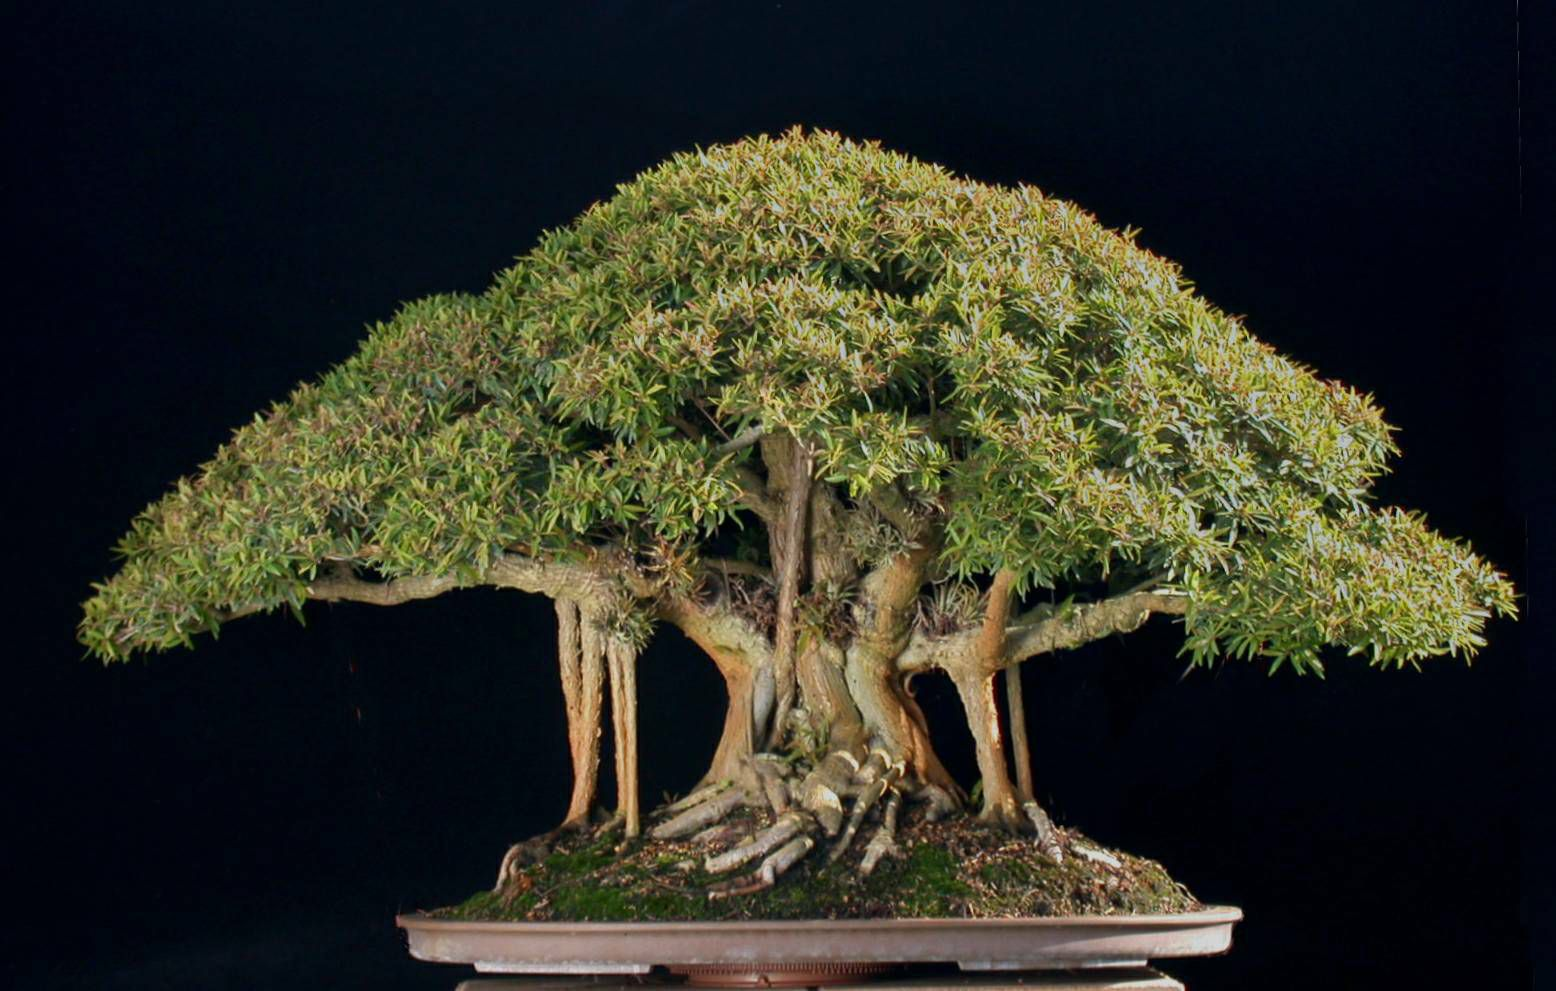 Types Of Bonsai Plants Who Can Defy The Artistry Of Bonsai Trees I Am Personally Fascinated